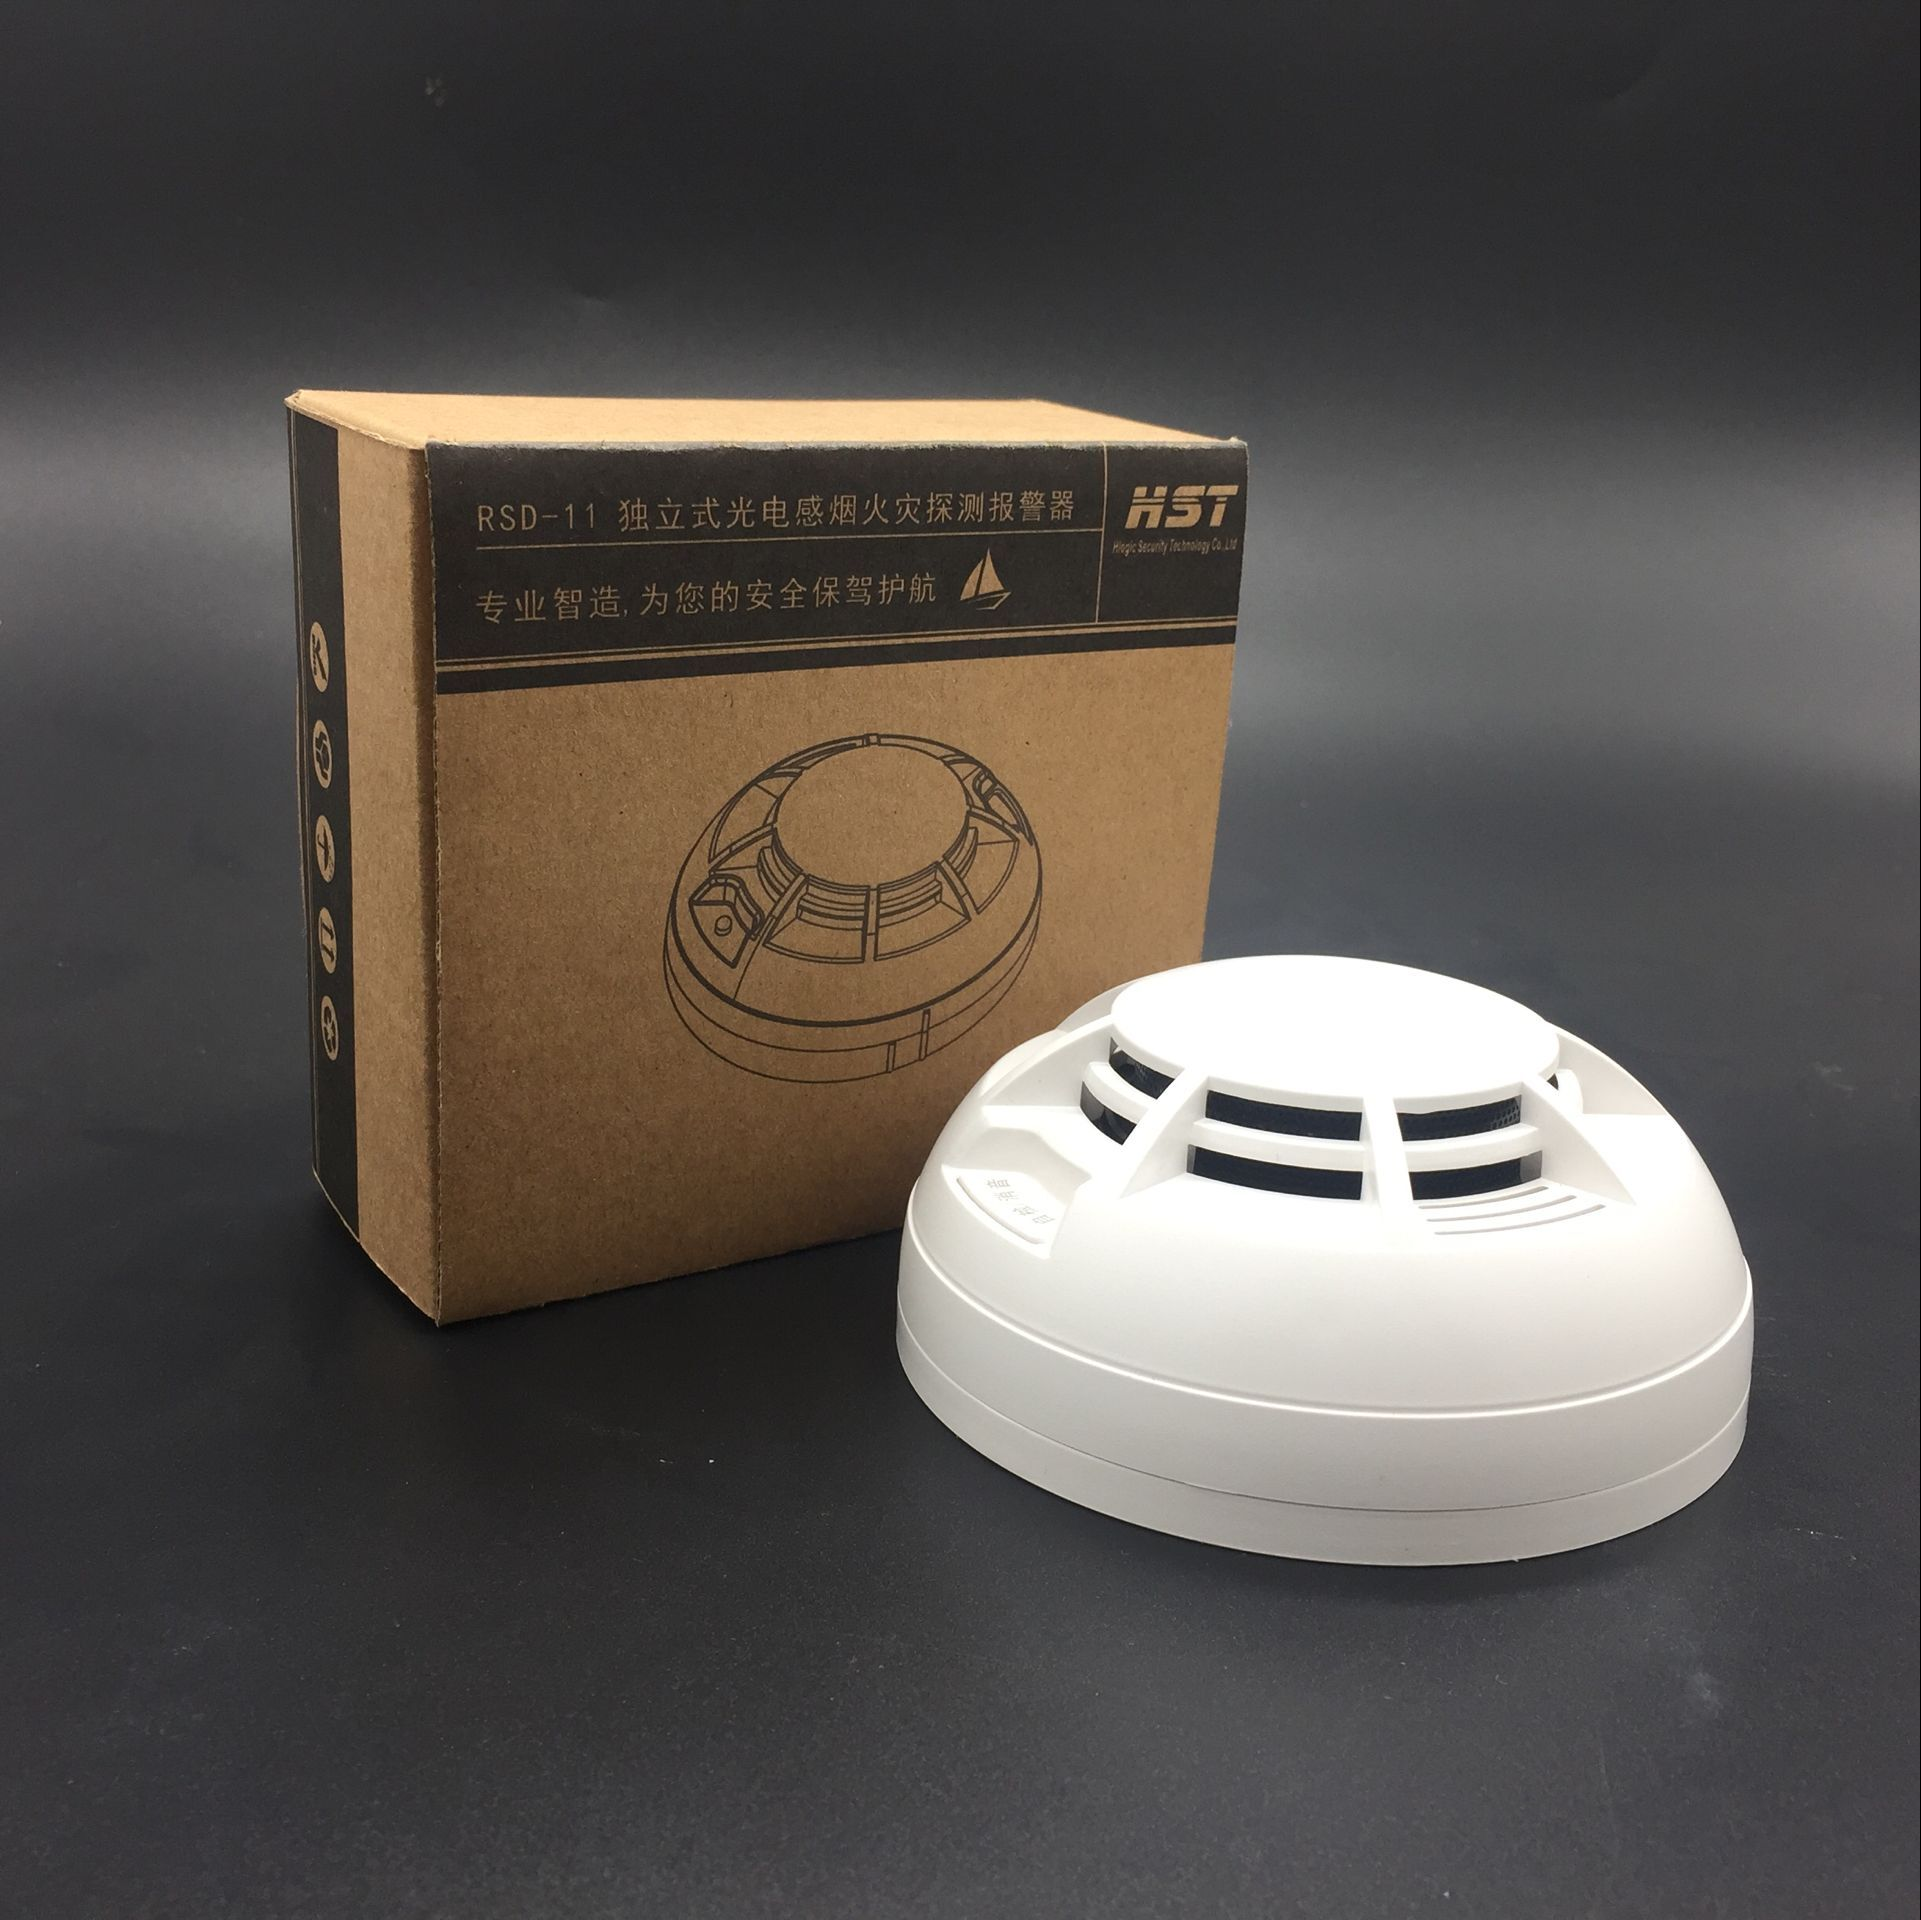 Battery Powered Independent Photoelectric Smoke Alarm 3V AA Standalone Smoke Detector For Home Safety